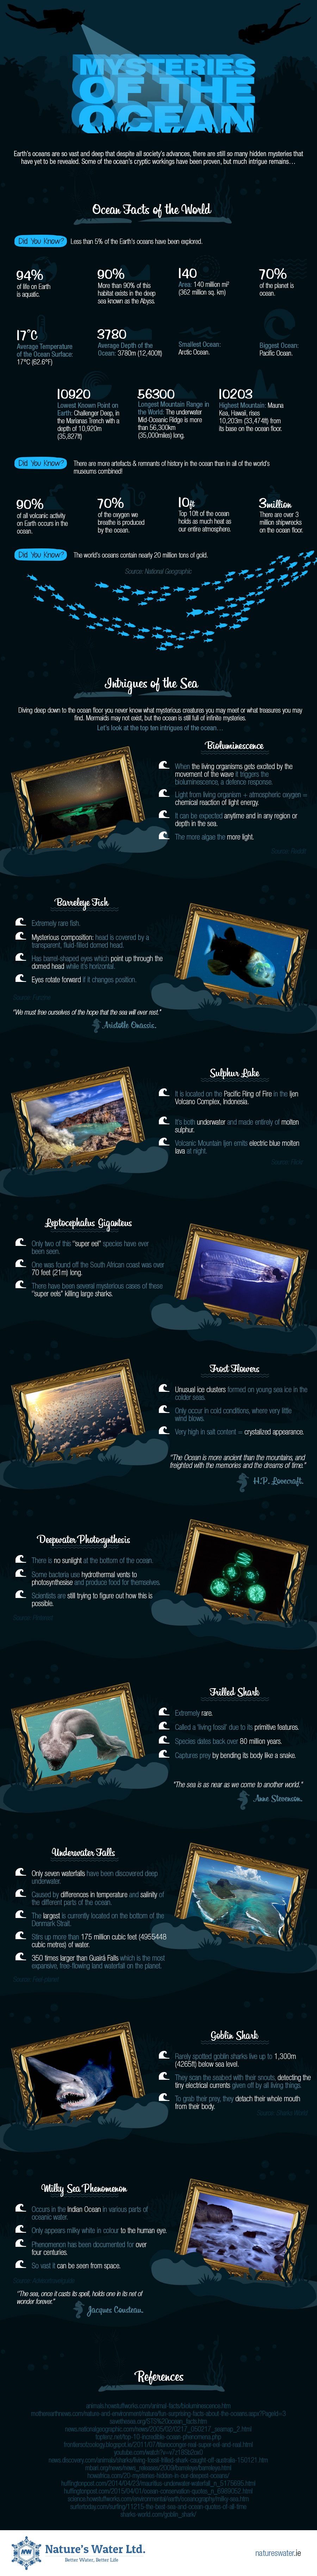 Mysteries of the ocean infographics